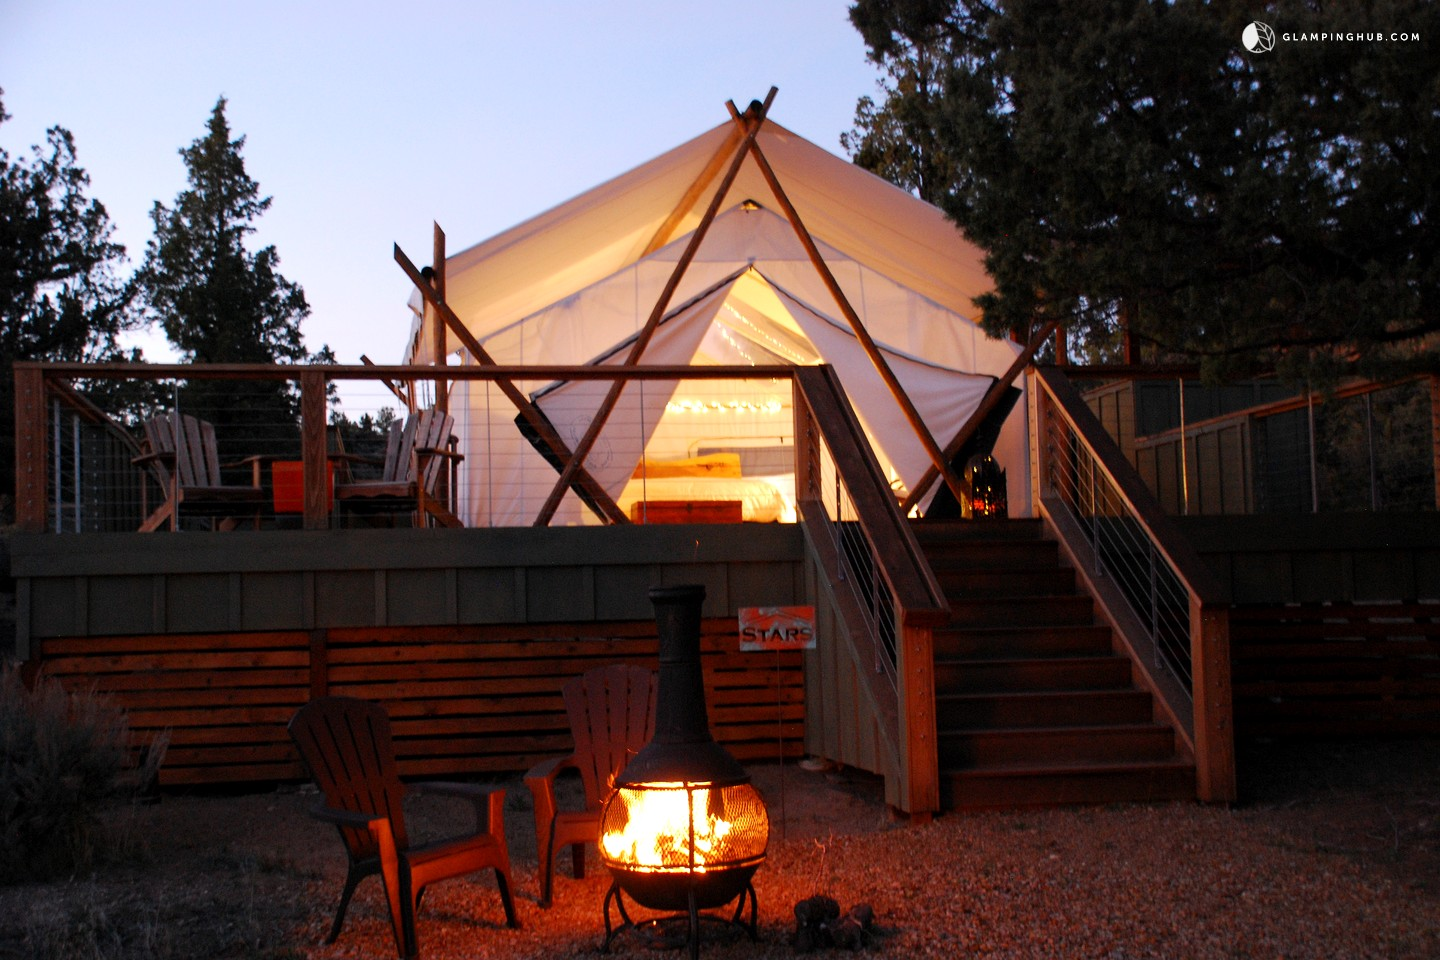 glamping-hub-washington-2 - Seattle Backpackers Magazine